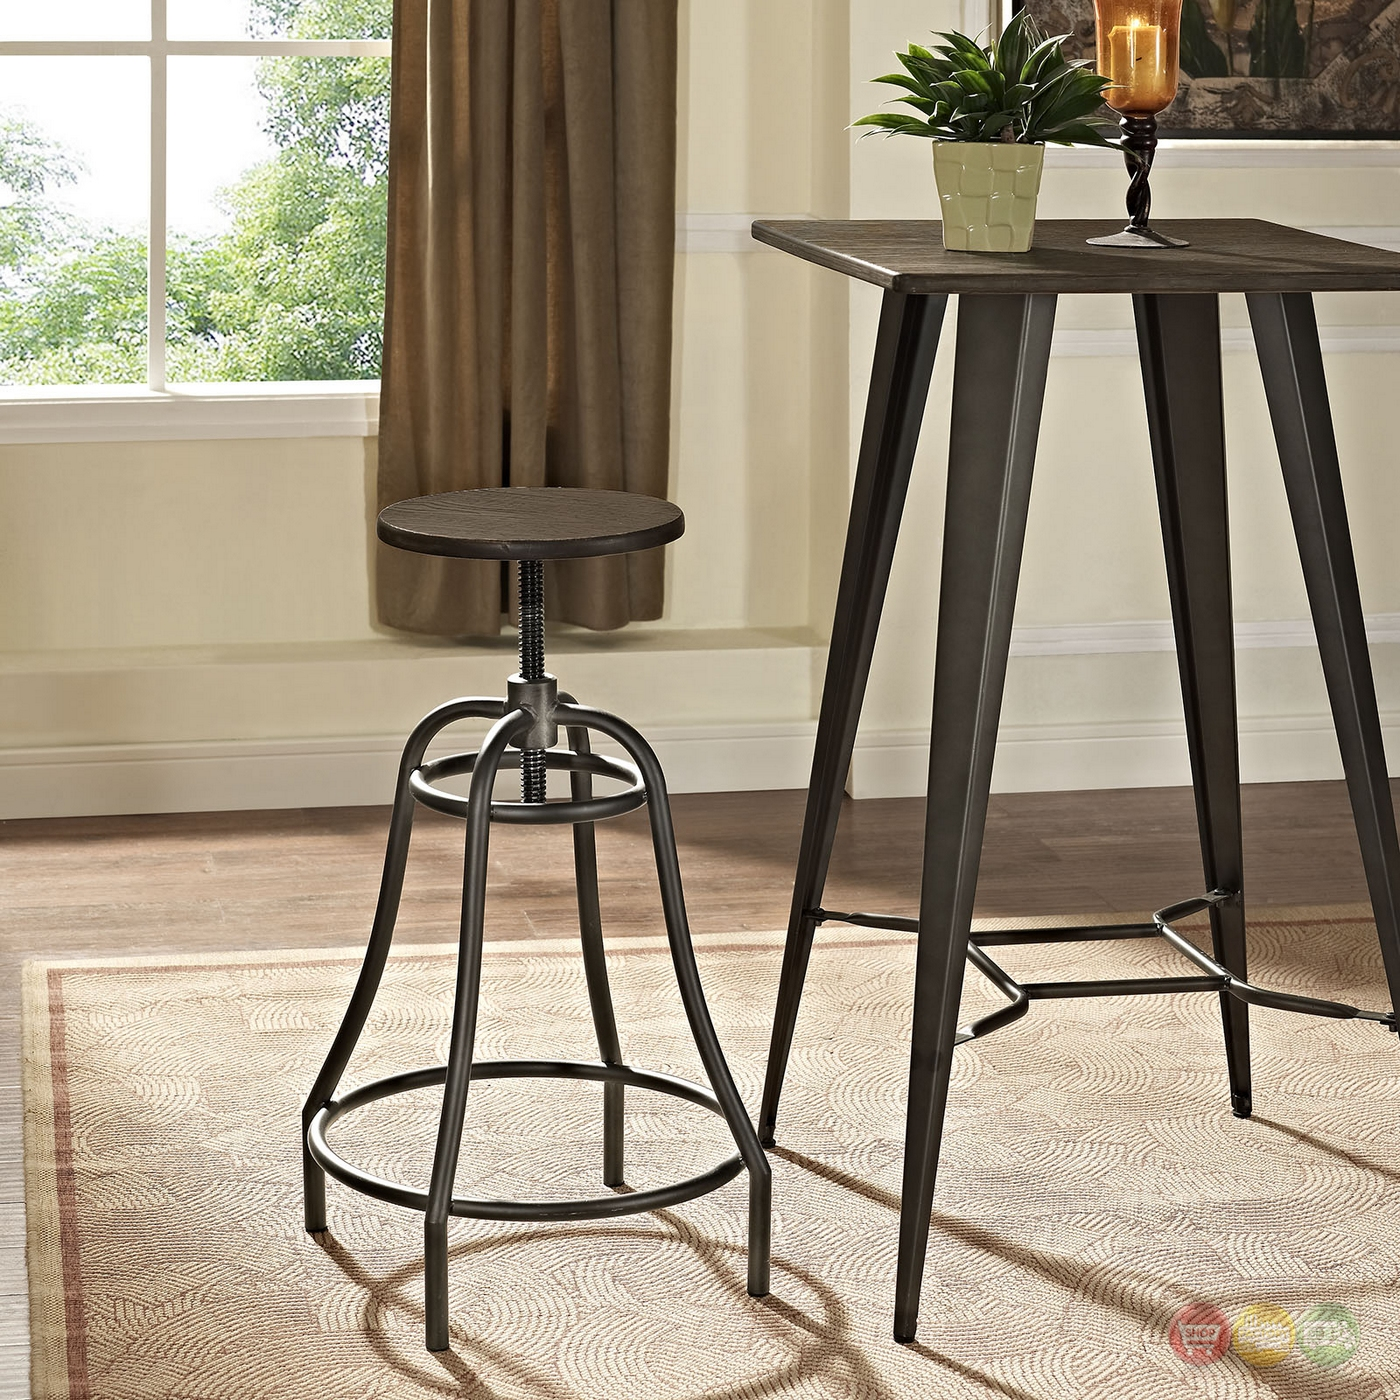 Toll Rustic Industrial Round Steel Bar Stool With Bamboo